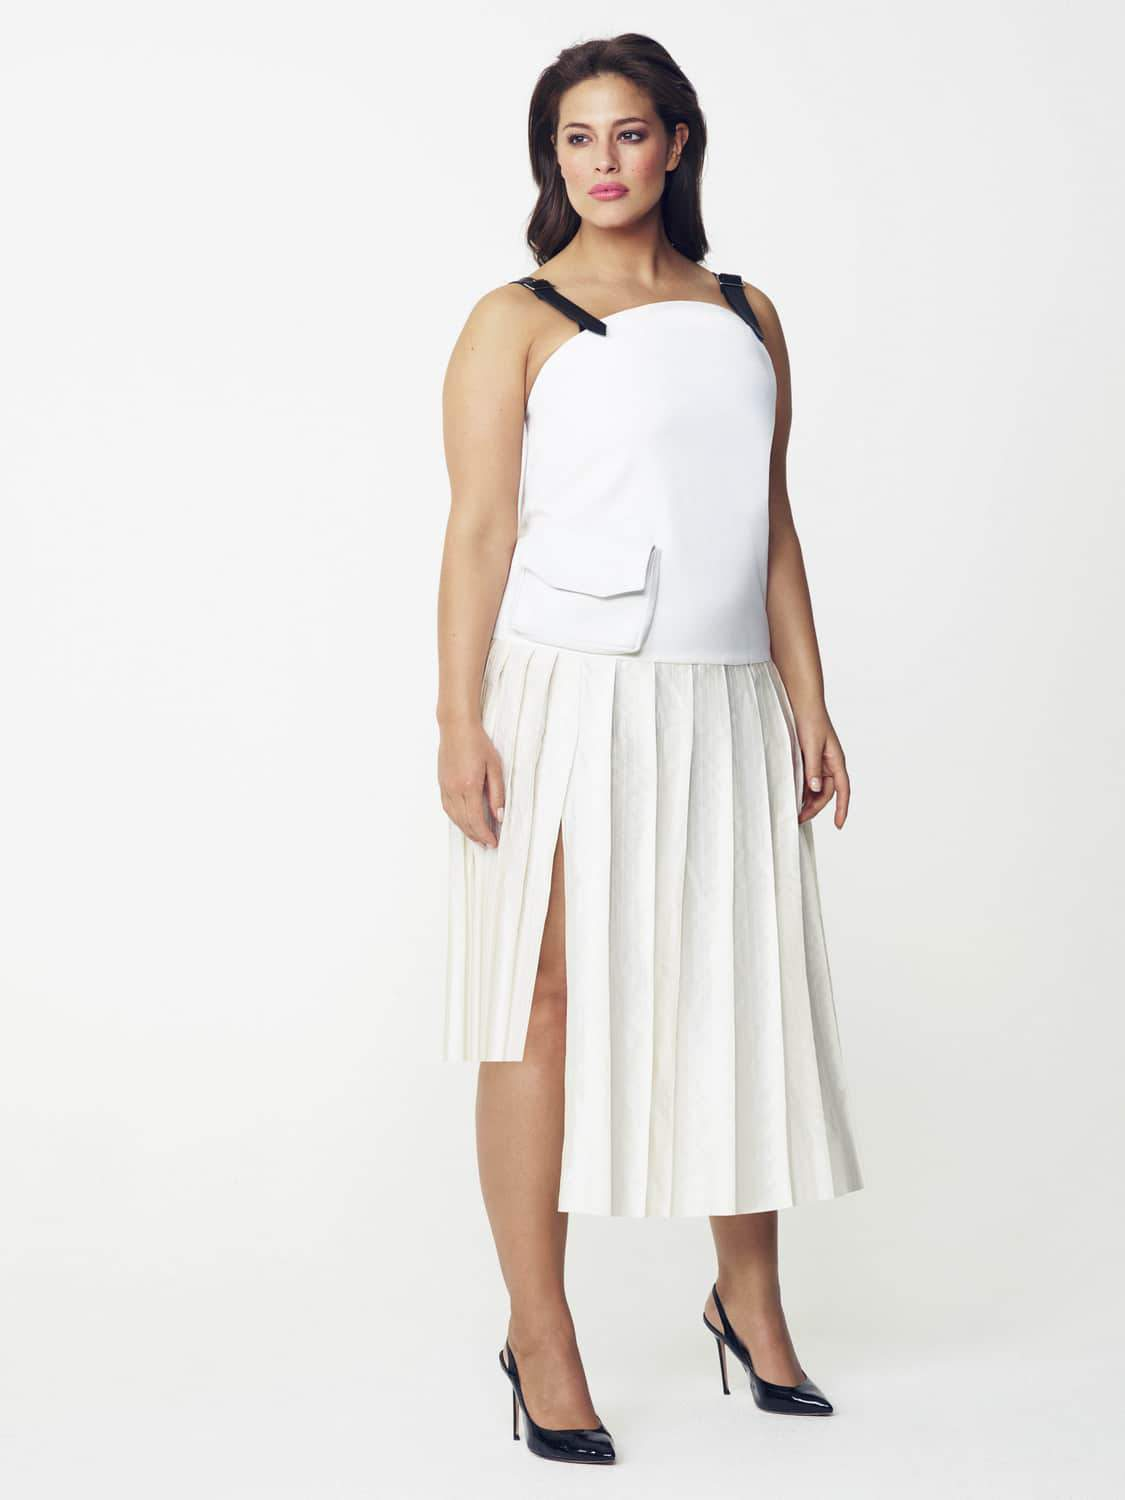 Jamie Wei Huang Plus Size Dress by Evans on TheCurvyFashionista.com